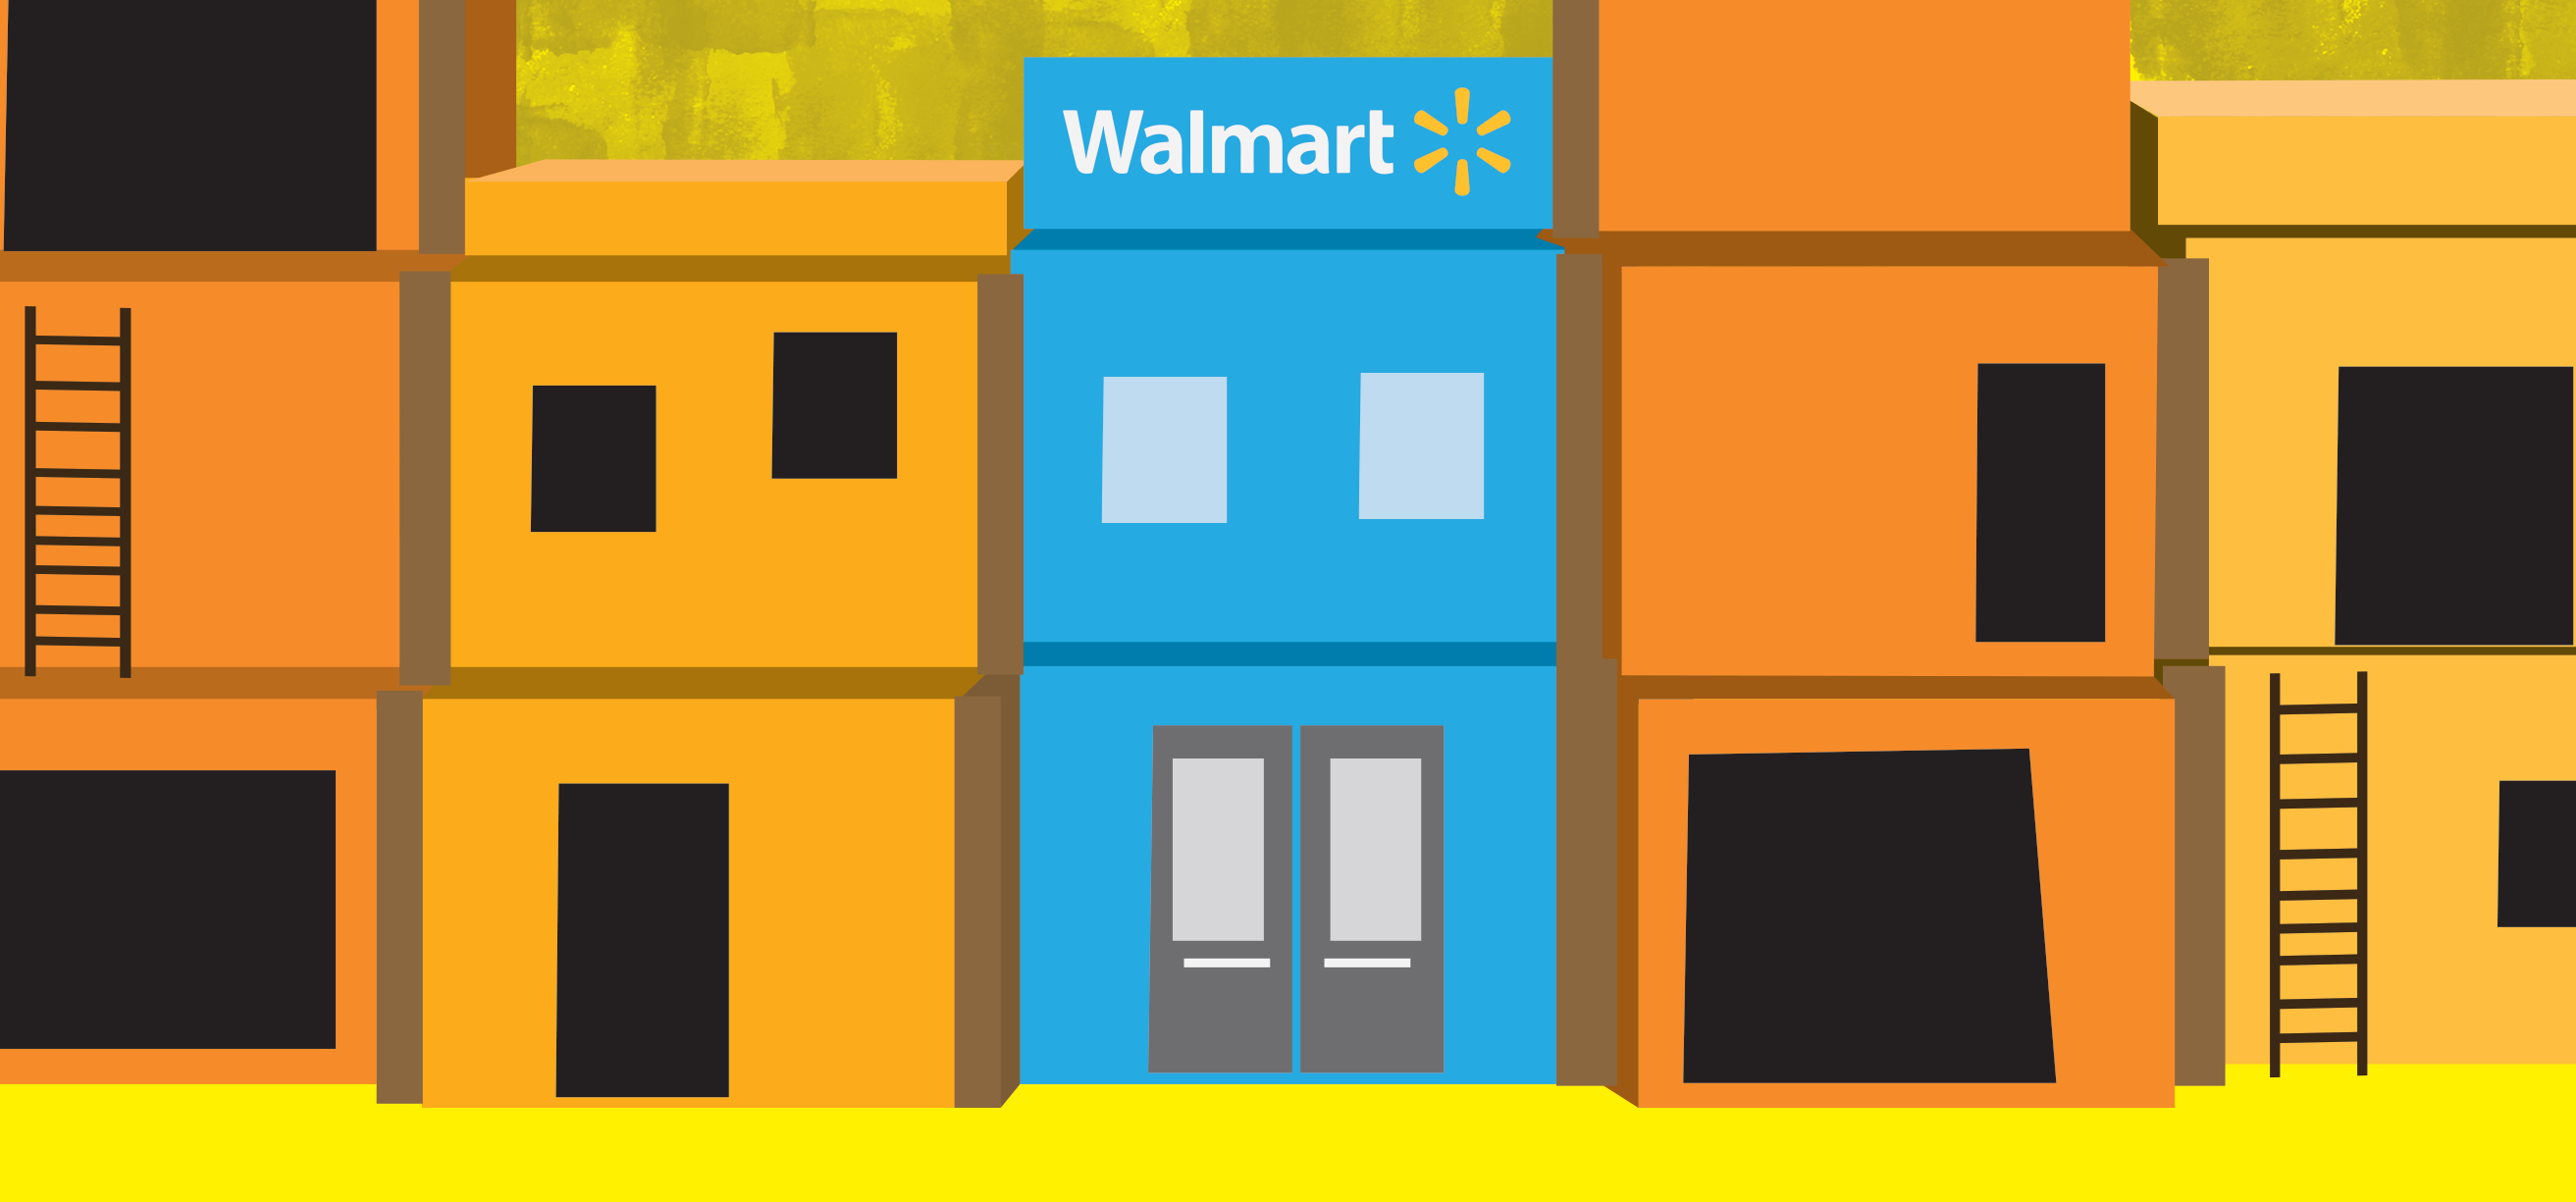 how does walmart create value and sustain competitive advantage